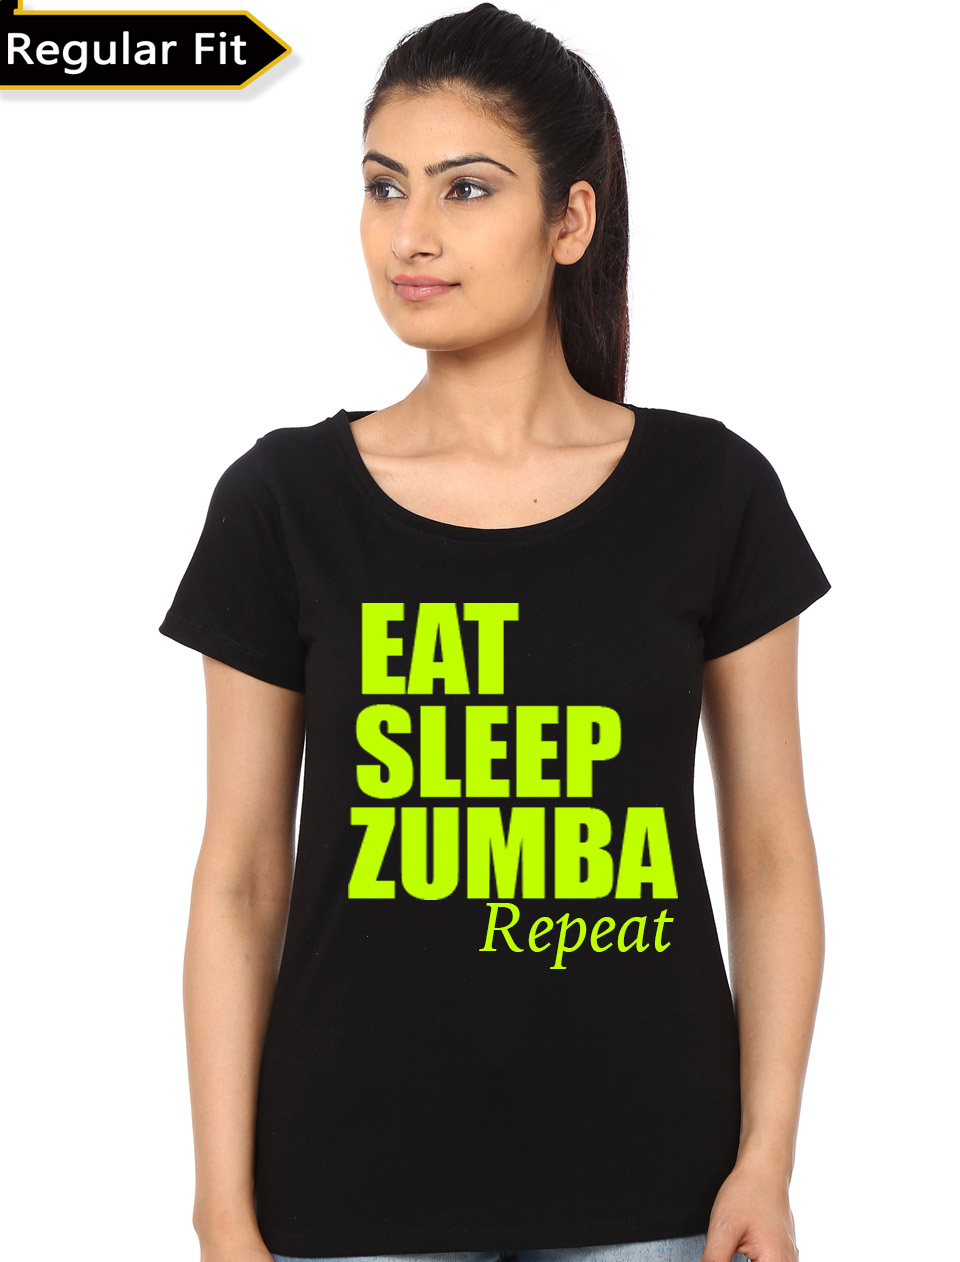 zumba girls t shirt swag shirts. Black Bedroom Furniture Sets. Home Design Ideas